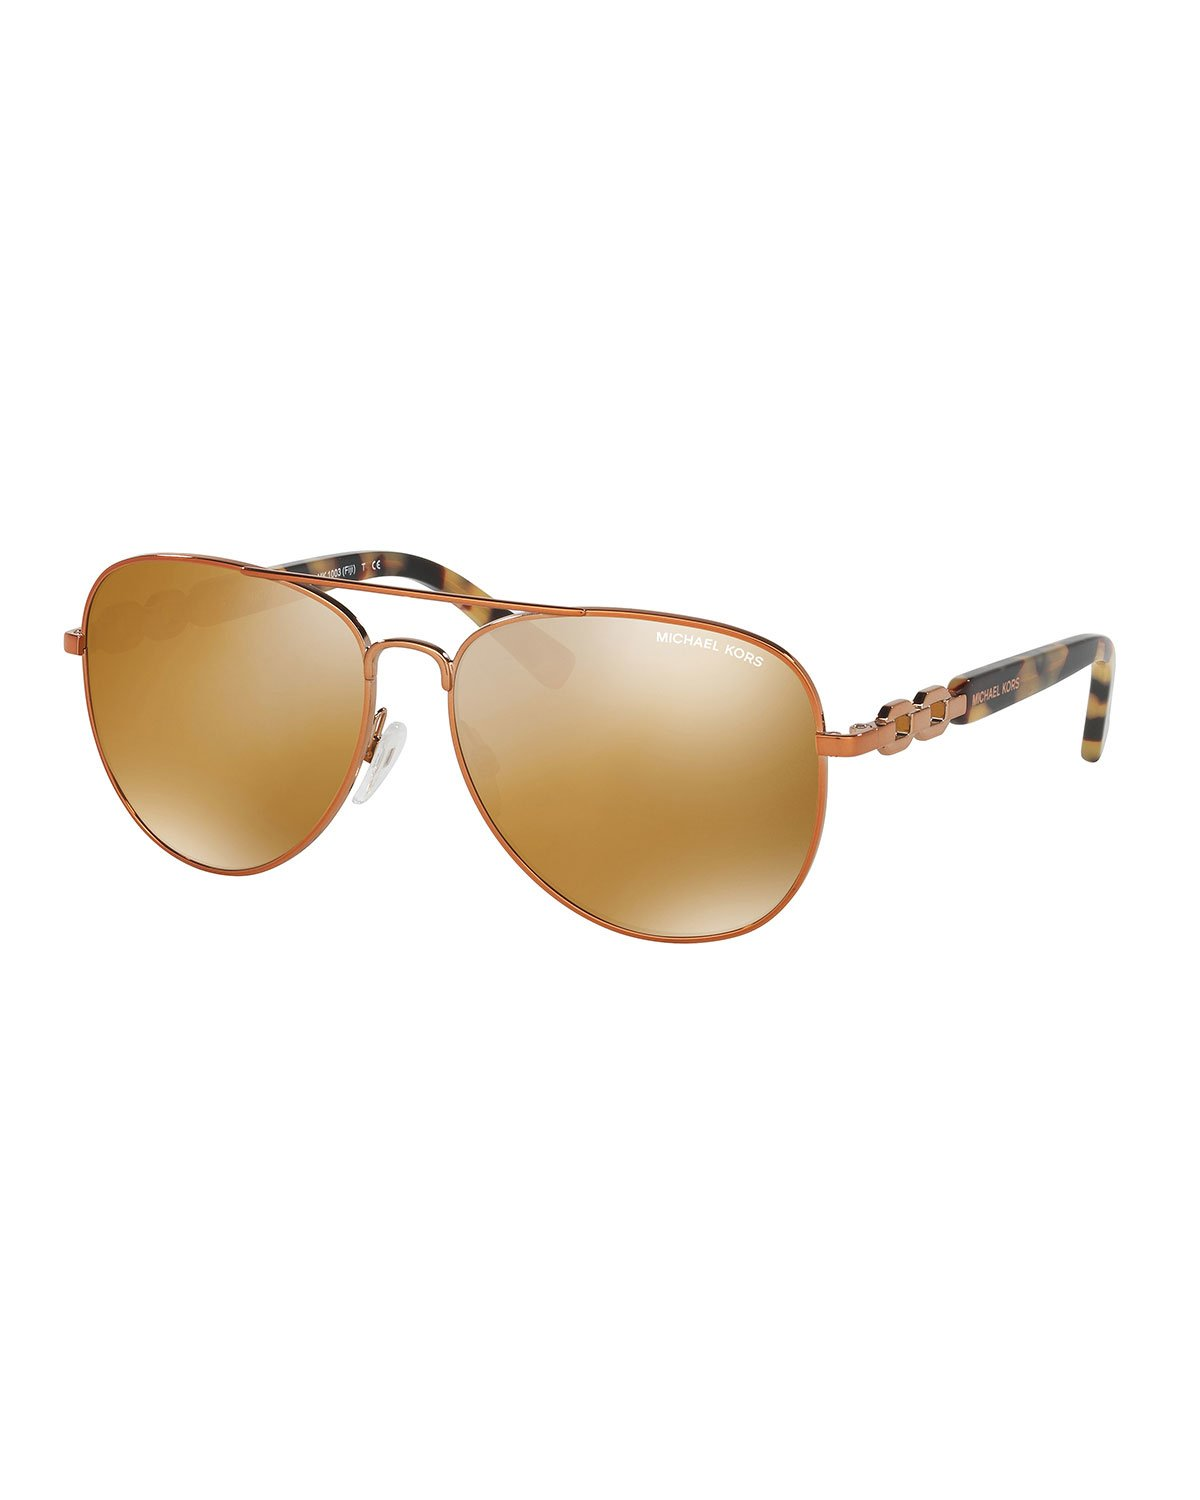 Rose Gold On Black Mirrored Sunglasses Restocked! This listing is for a pair of Cat Eye aviator sunshades. The color is more of a pewterish hereuloadu5.ga true to the pictures.